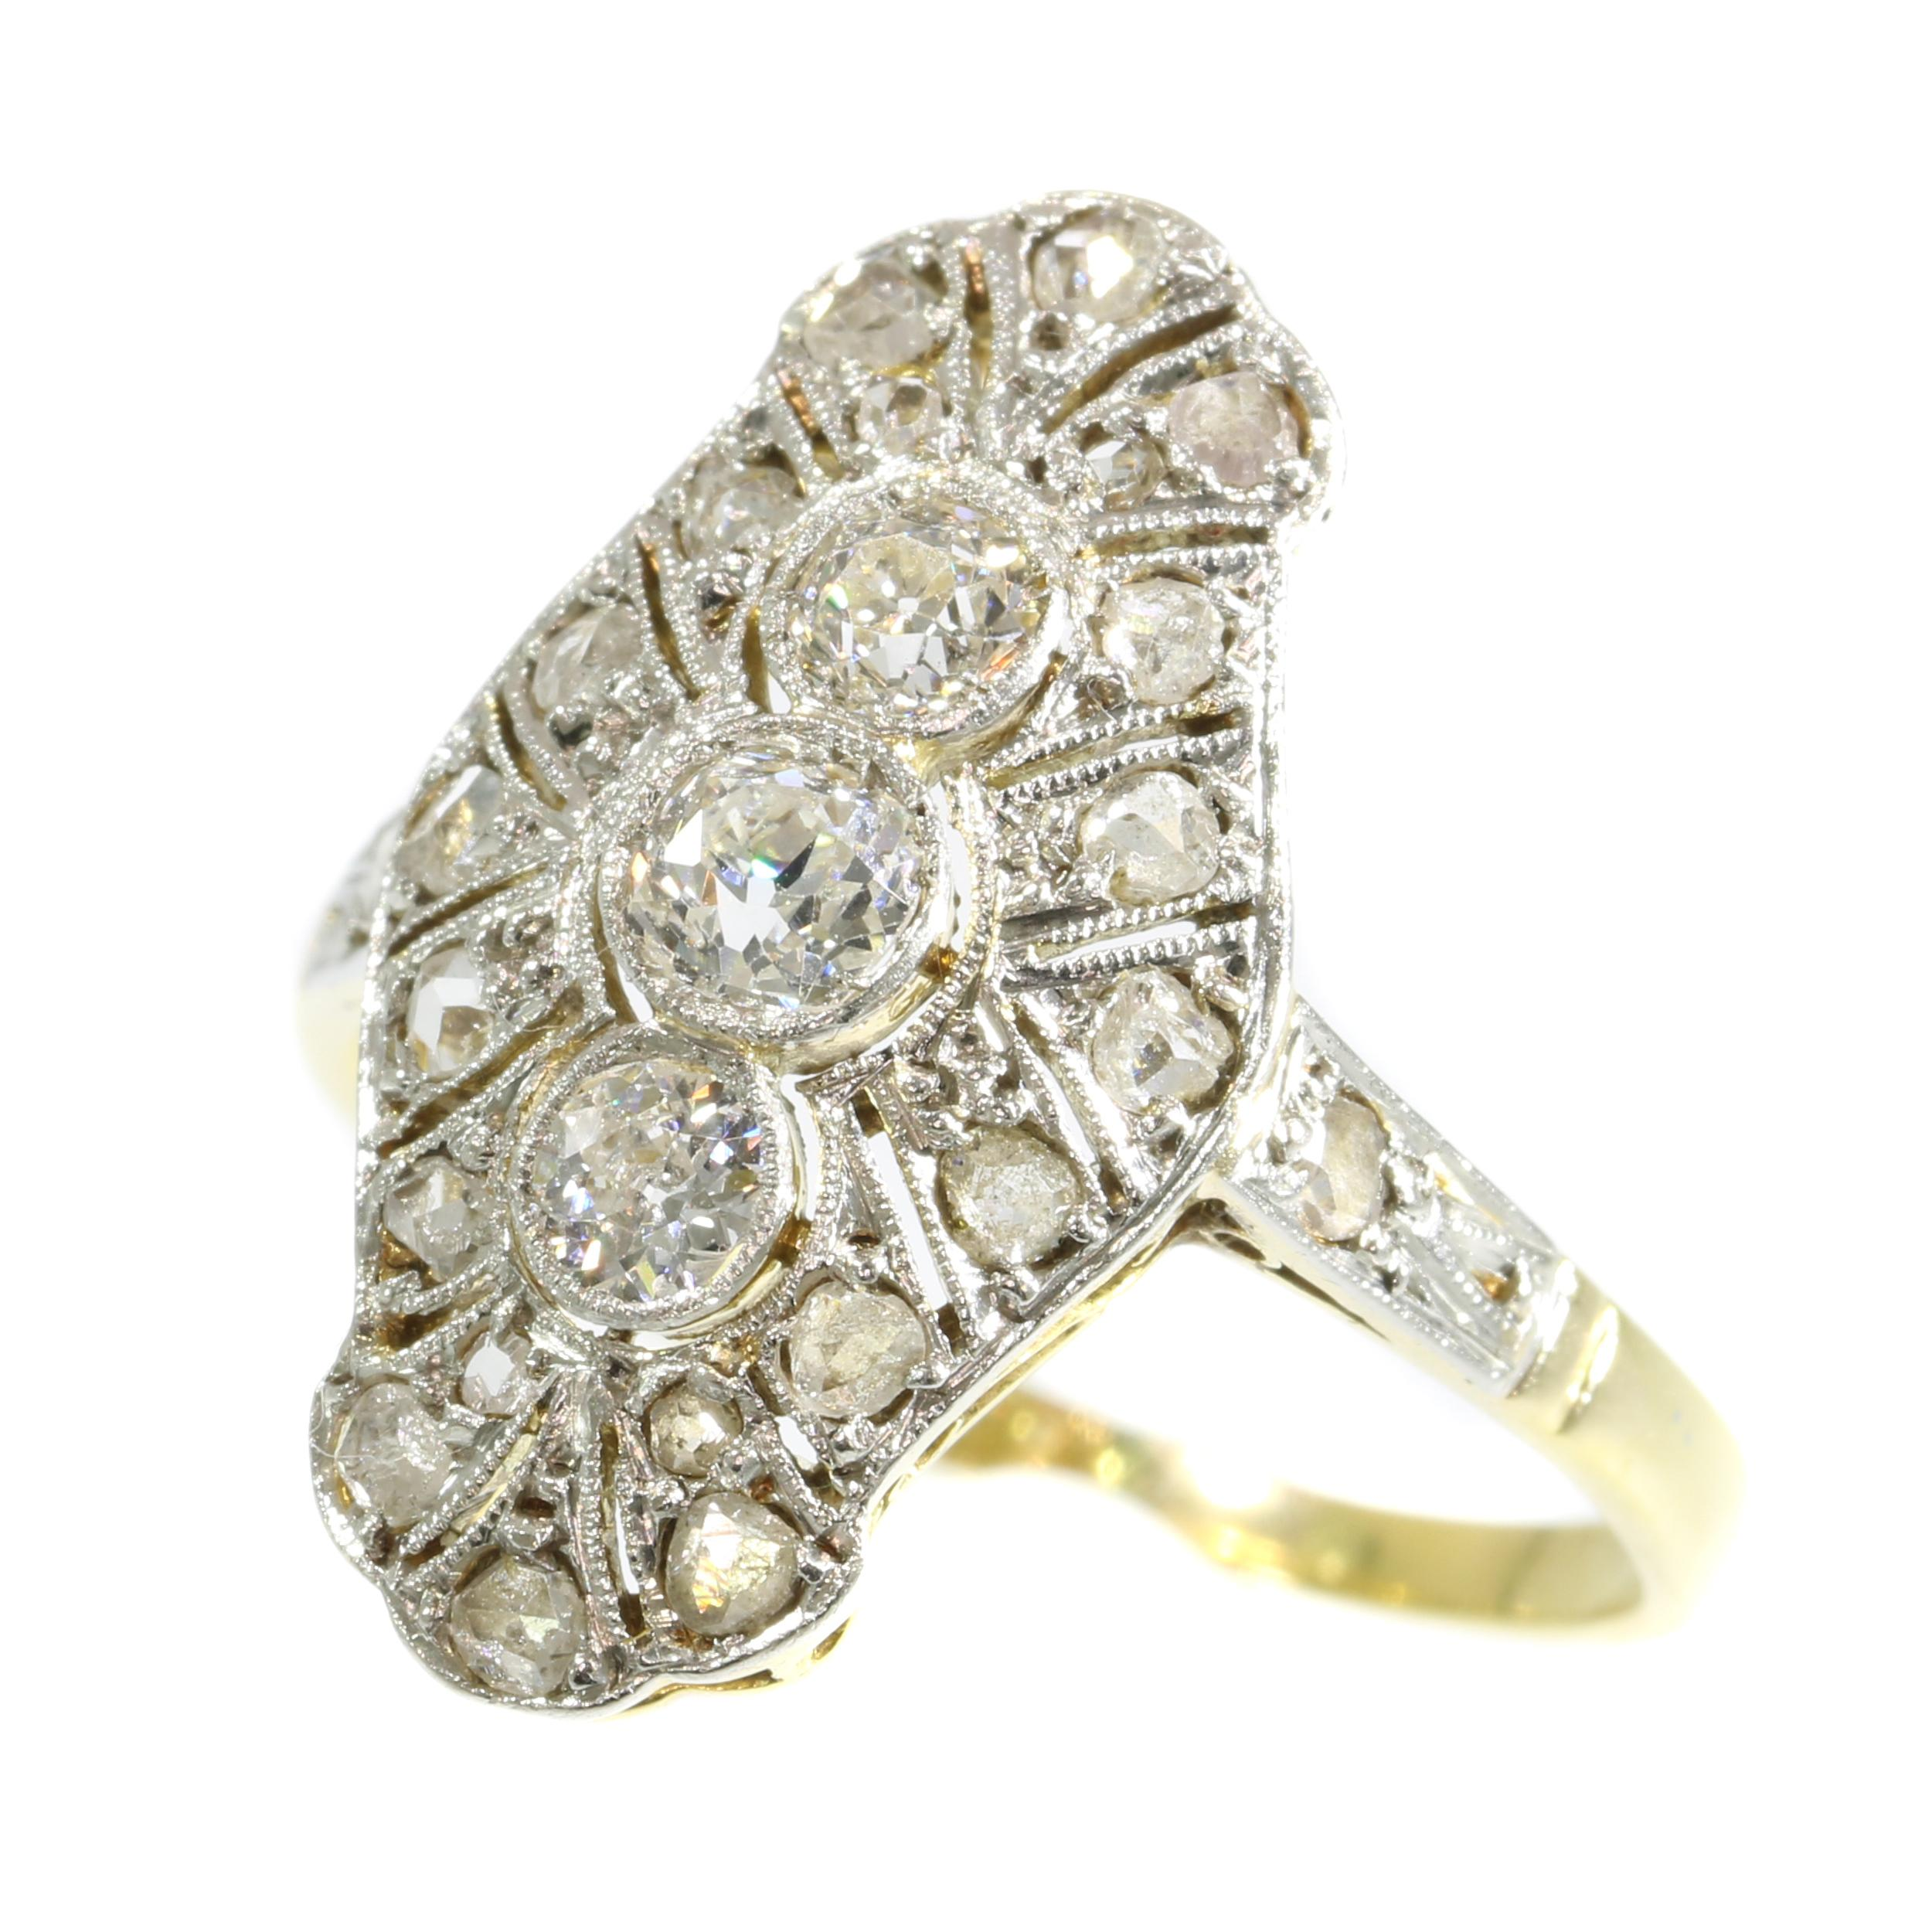 1e64e8ac07f94 Genuine Vintage Art Deco Three-Stone Diamond Engagement Ring For Sale at  1stdibs